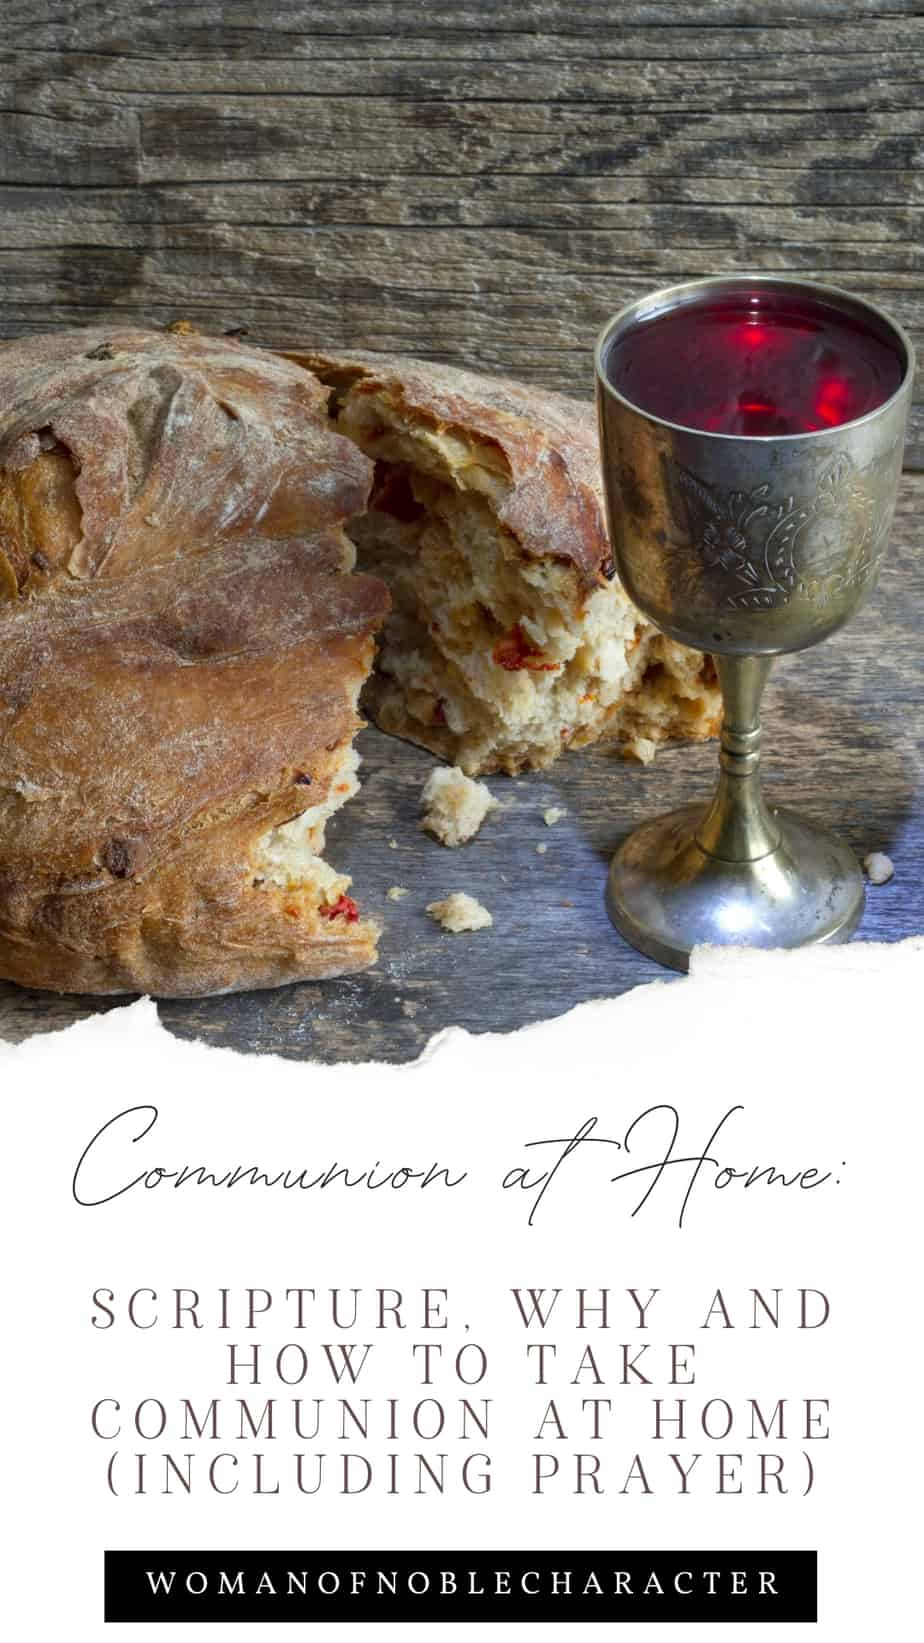 An image of bread and wine with an overlay of text that says,